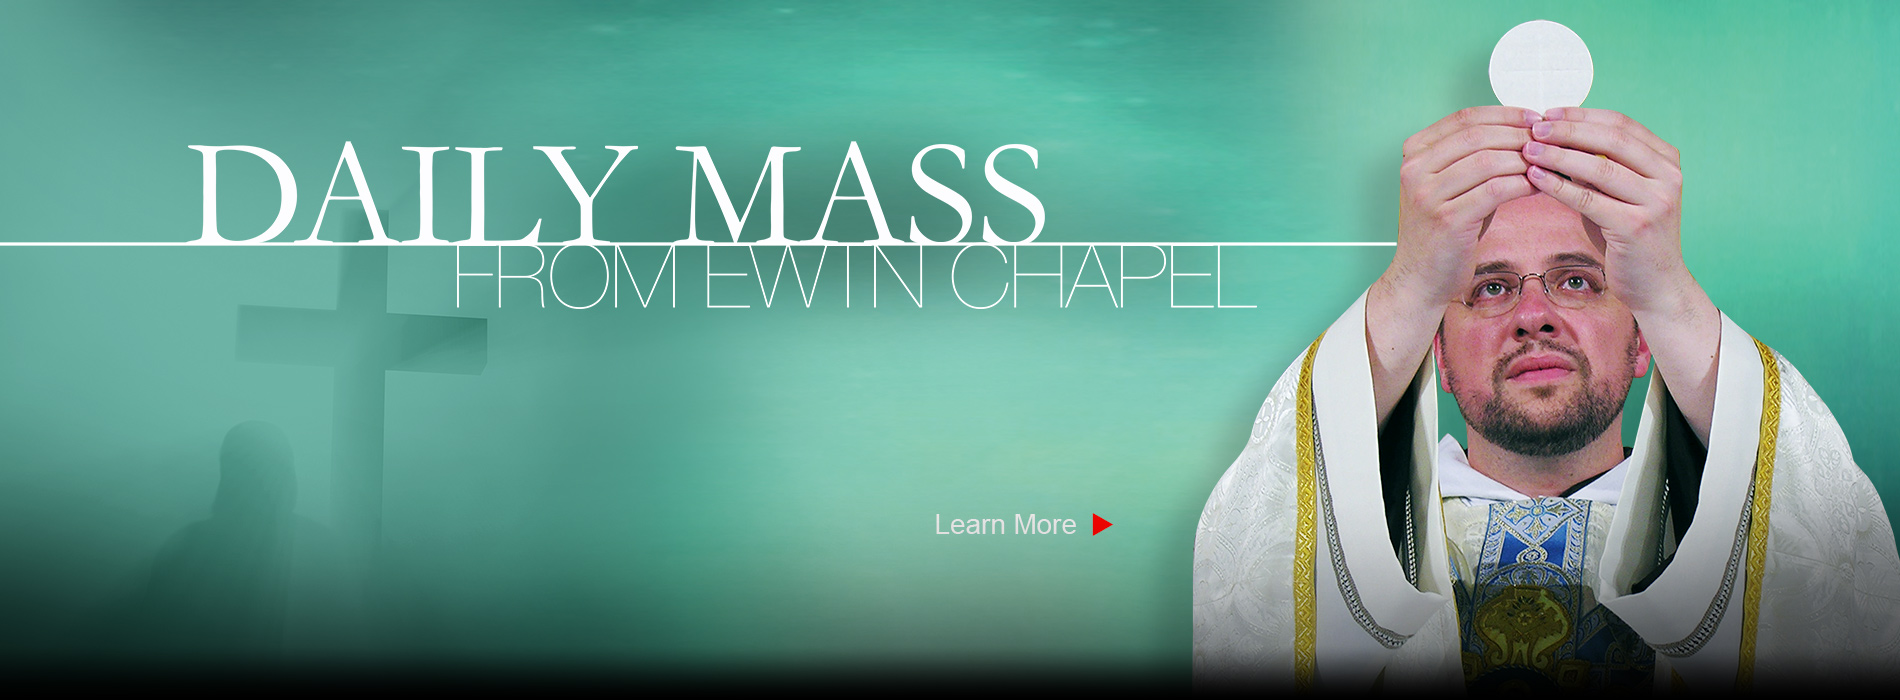 Join us for daily mass on EWTN